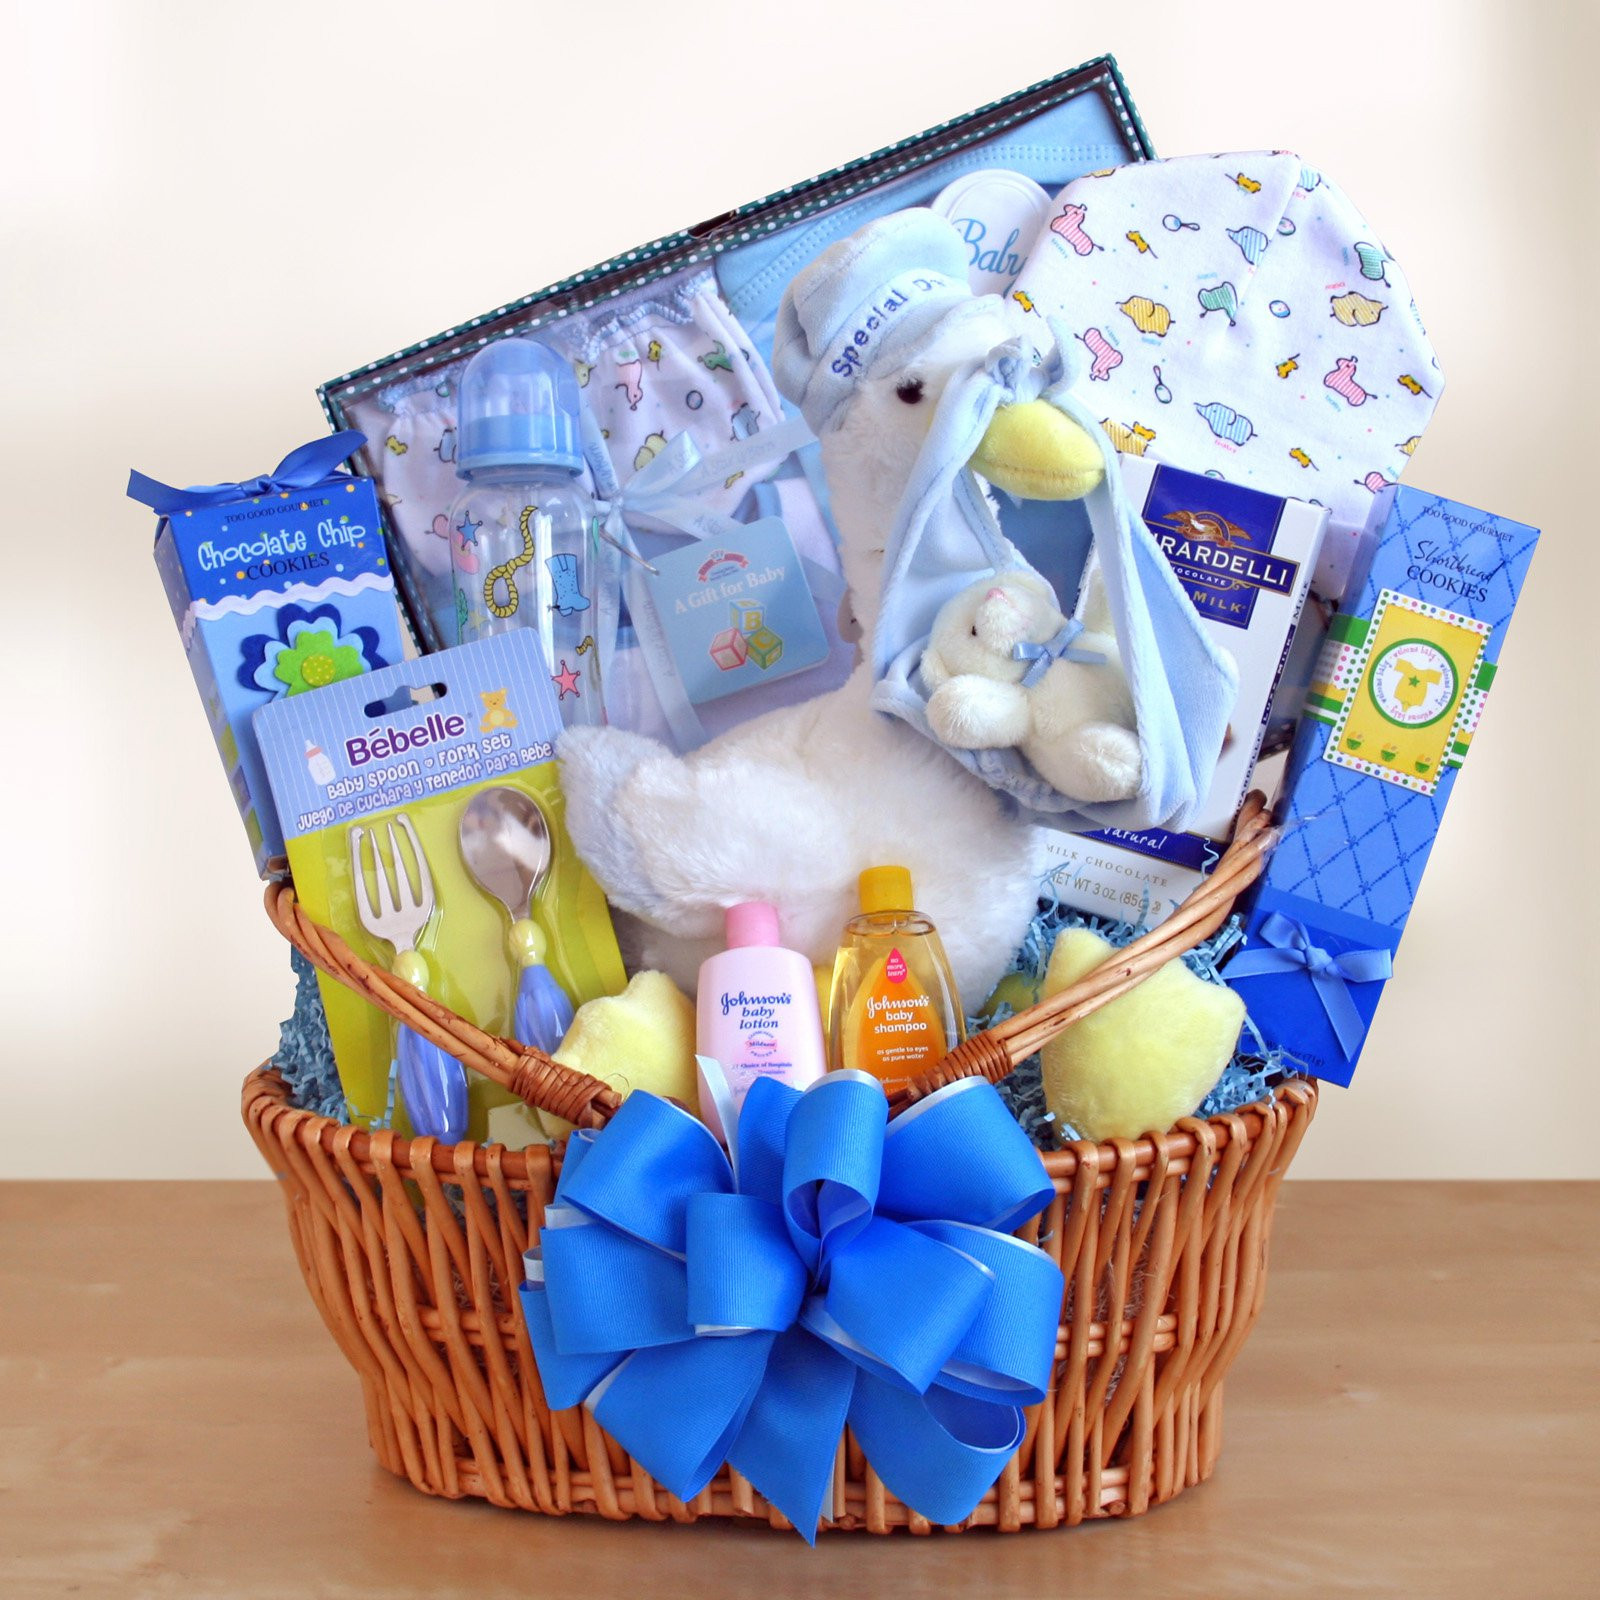 Best ideas about New Baby Boy Gift Ideas . Save or Pin Special Stork Delivery Baby Boy Gift Basket Gift Baskets Now.